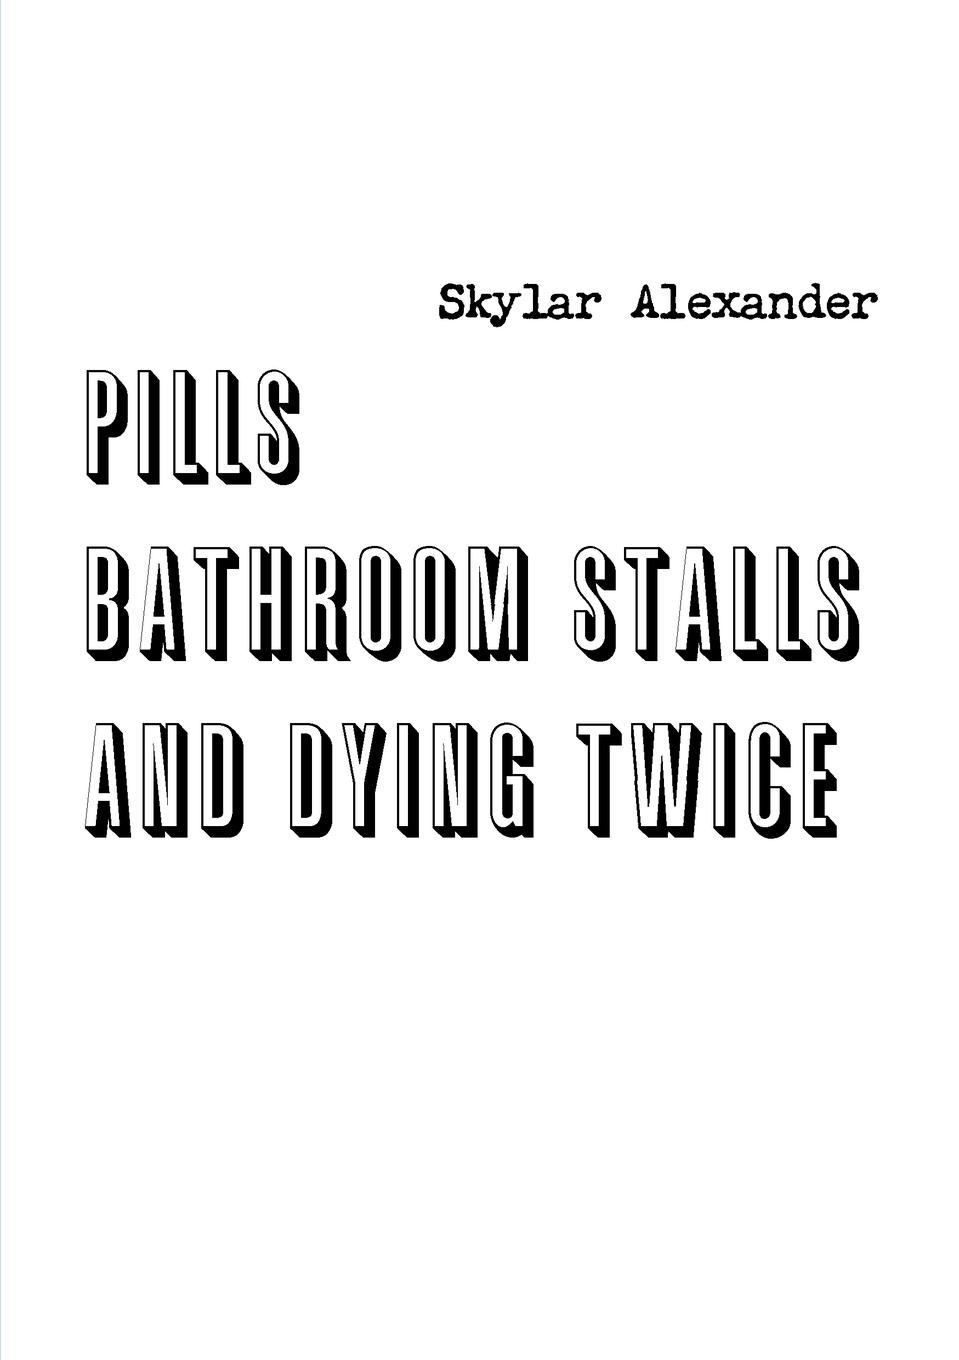 Skylar Alexander Pills, Bathroom Stalls, and Dying Twice the art of dying